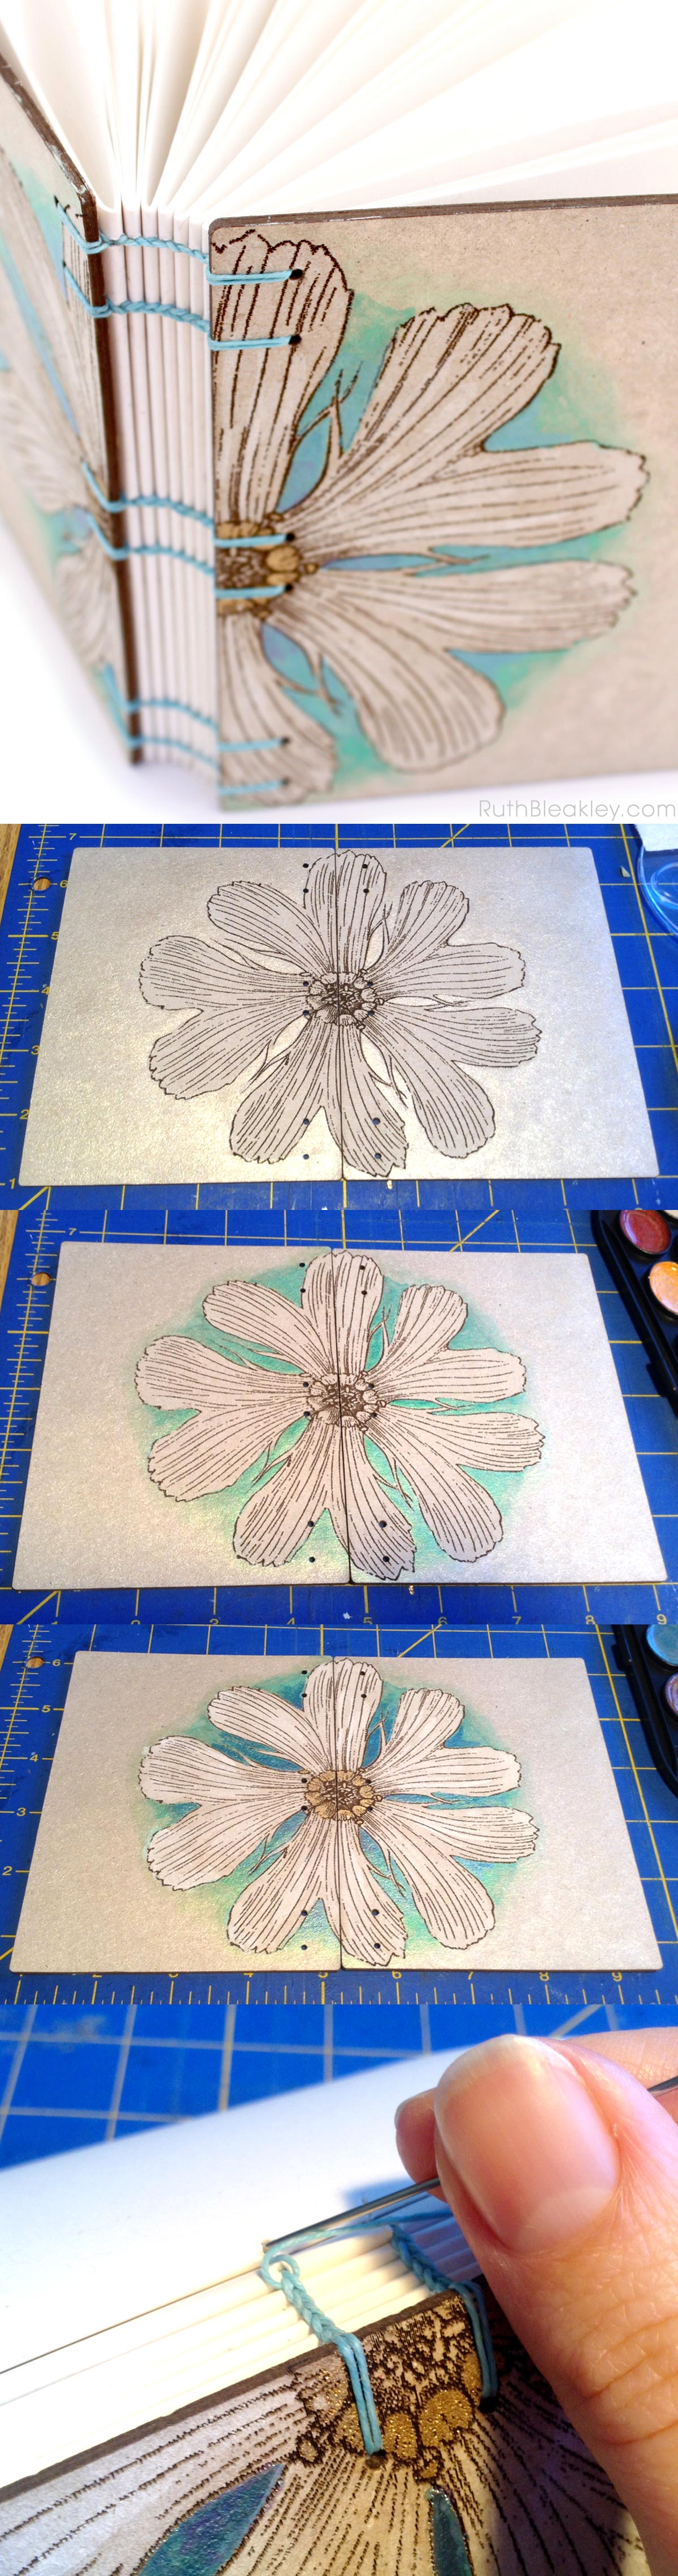 coptic bookbinding handpainted daisy journal by Ruth Bleakley